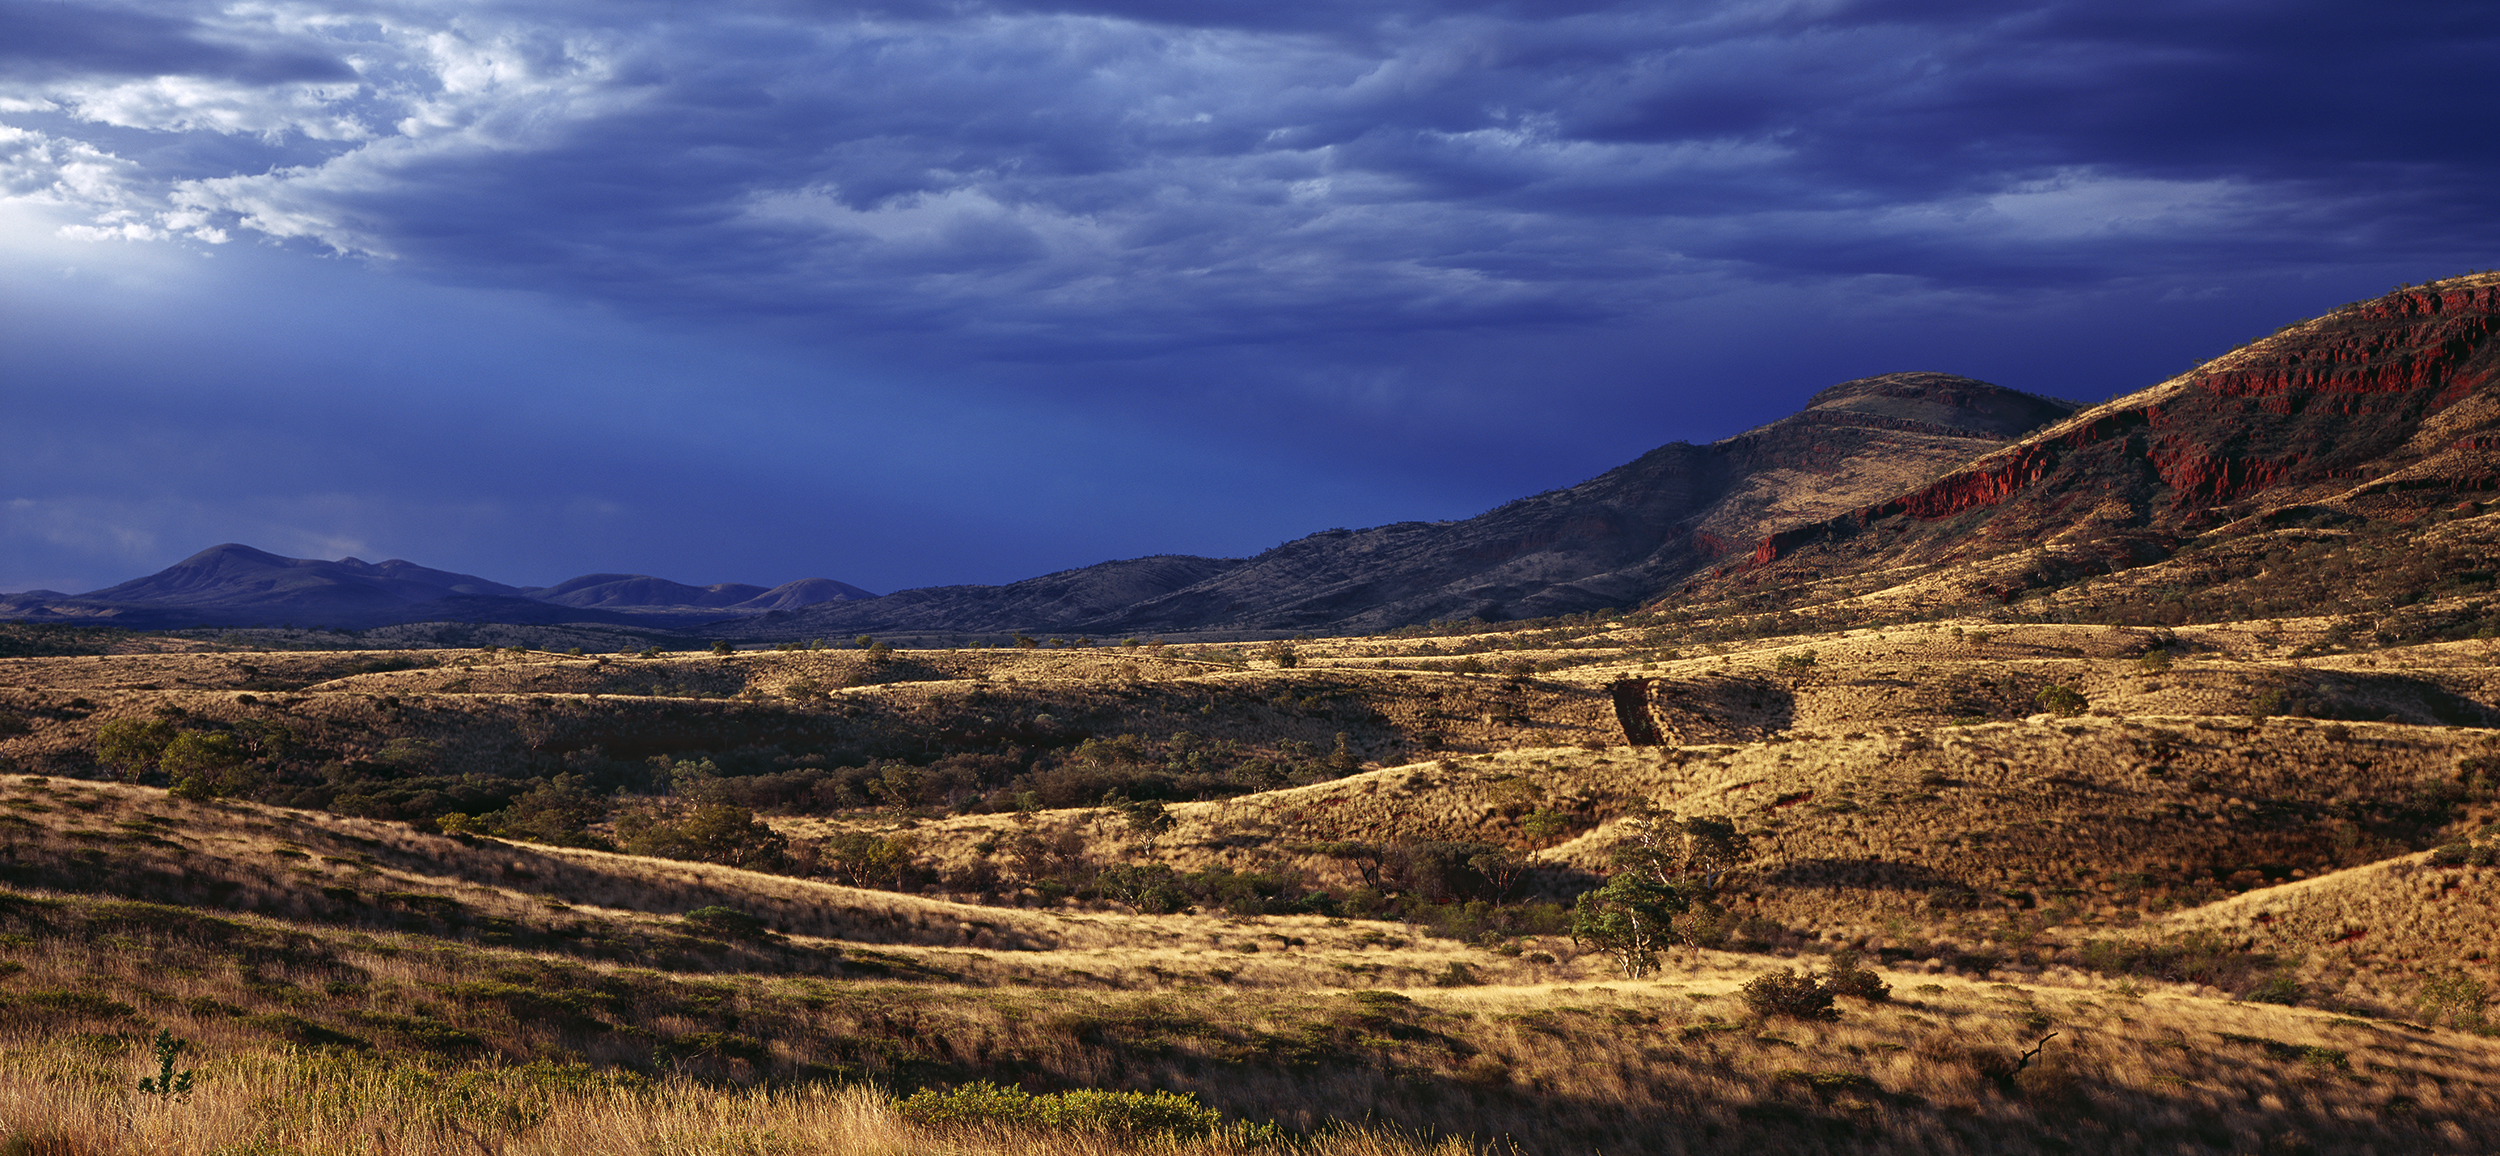 Summer Storms, Looking towards Mt Turner, Paraburdoo, Western Australia.  Edition of 3.